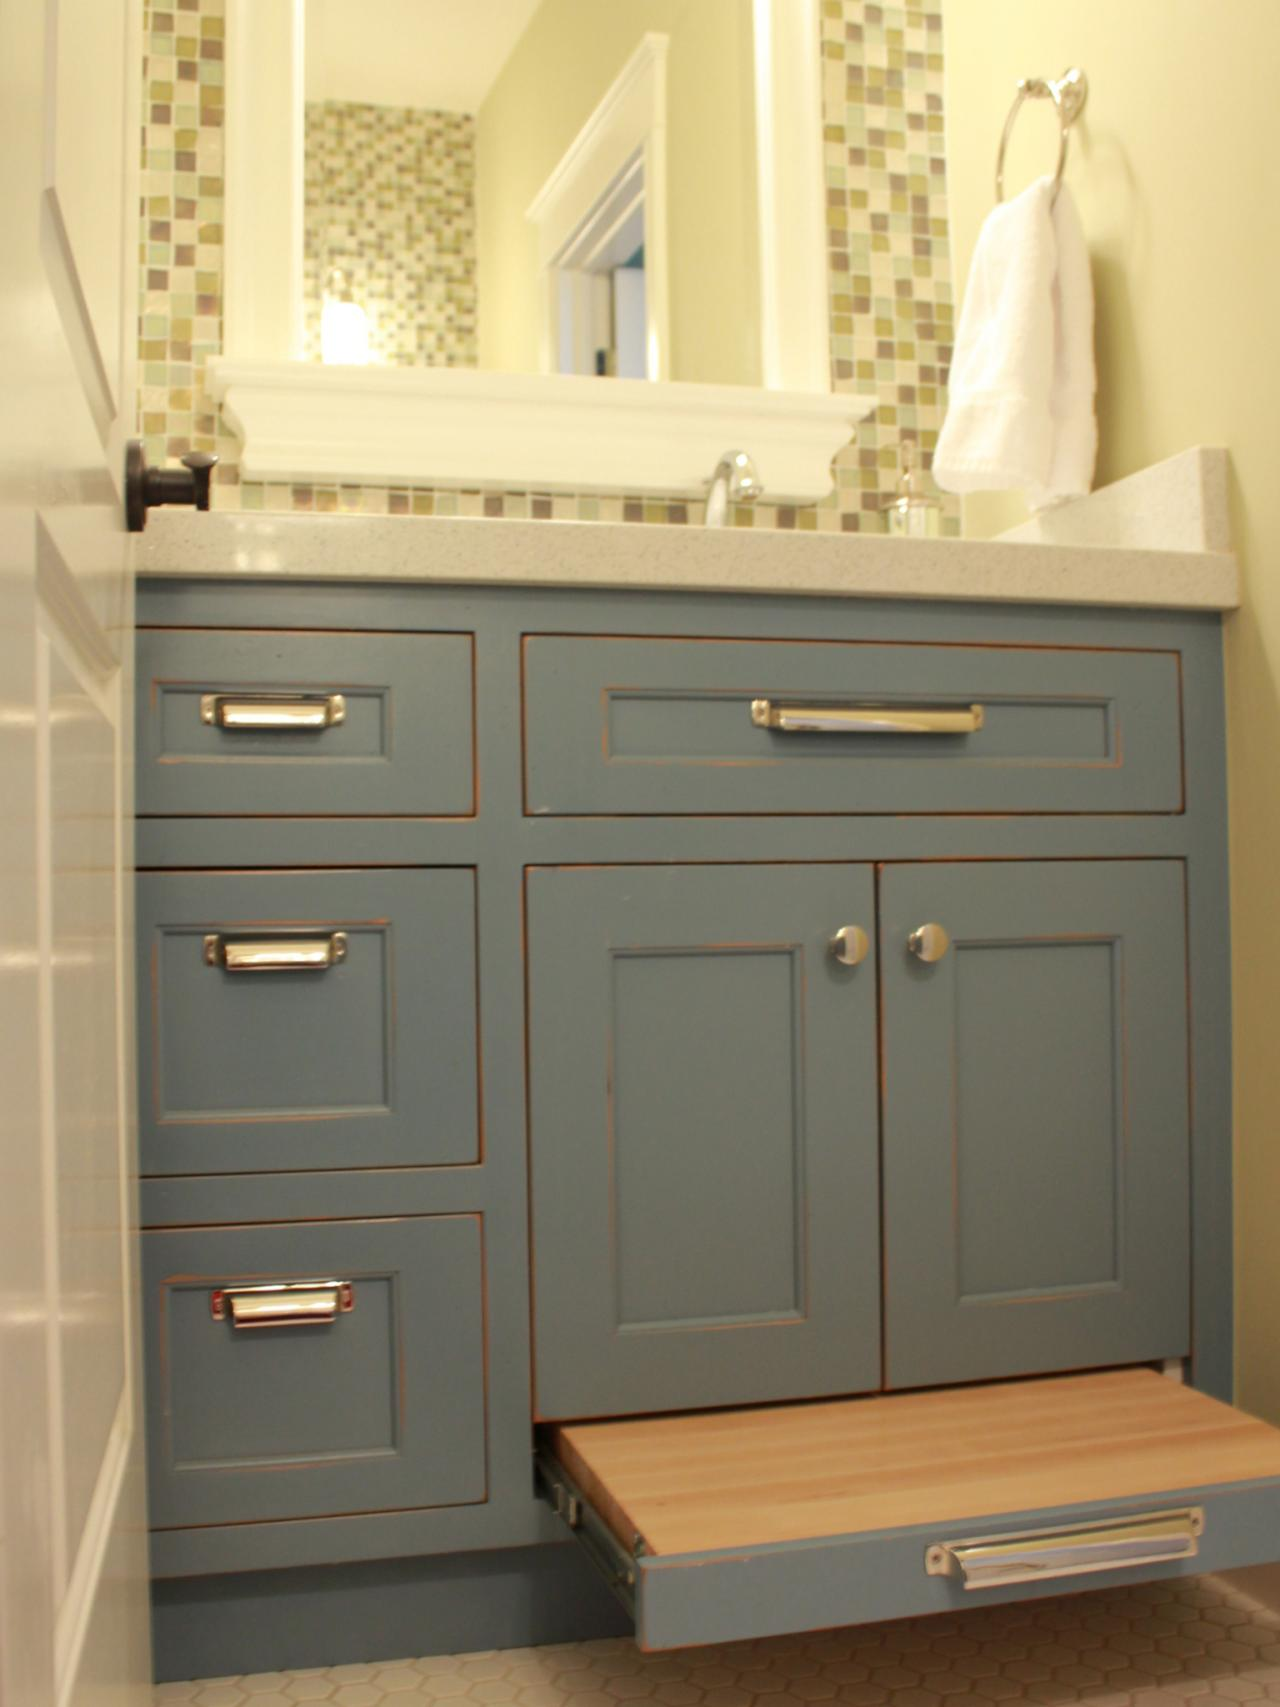 Traditional Bathroom Vanities And Cabinets traditional bathroom vanities | hgtv